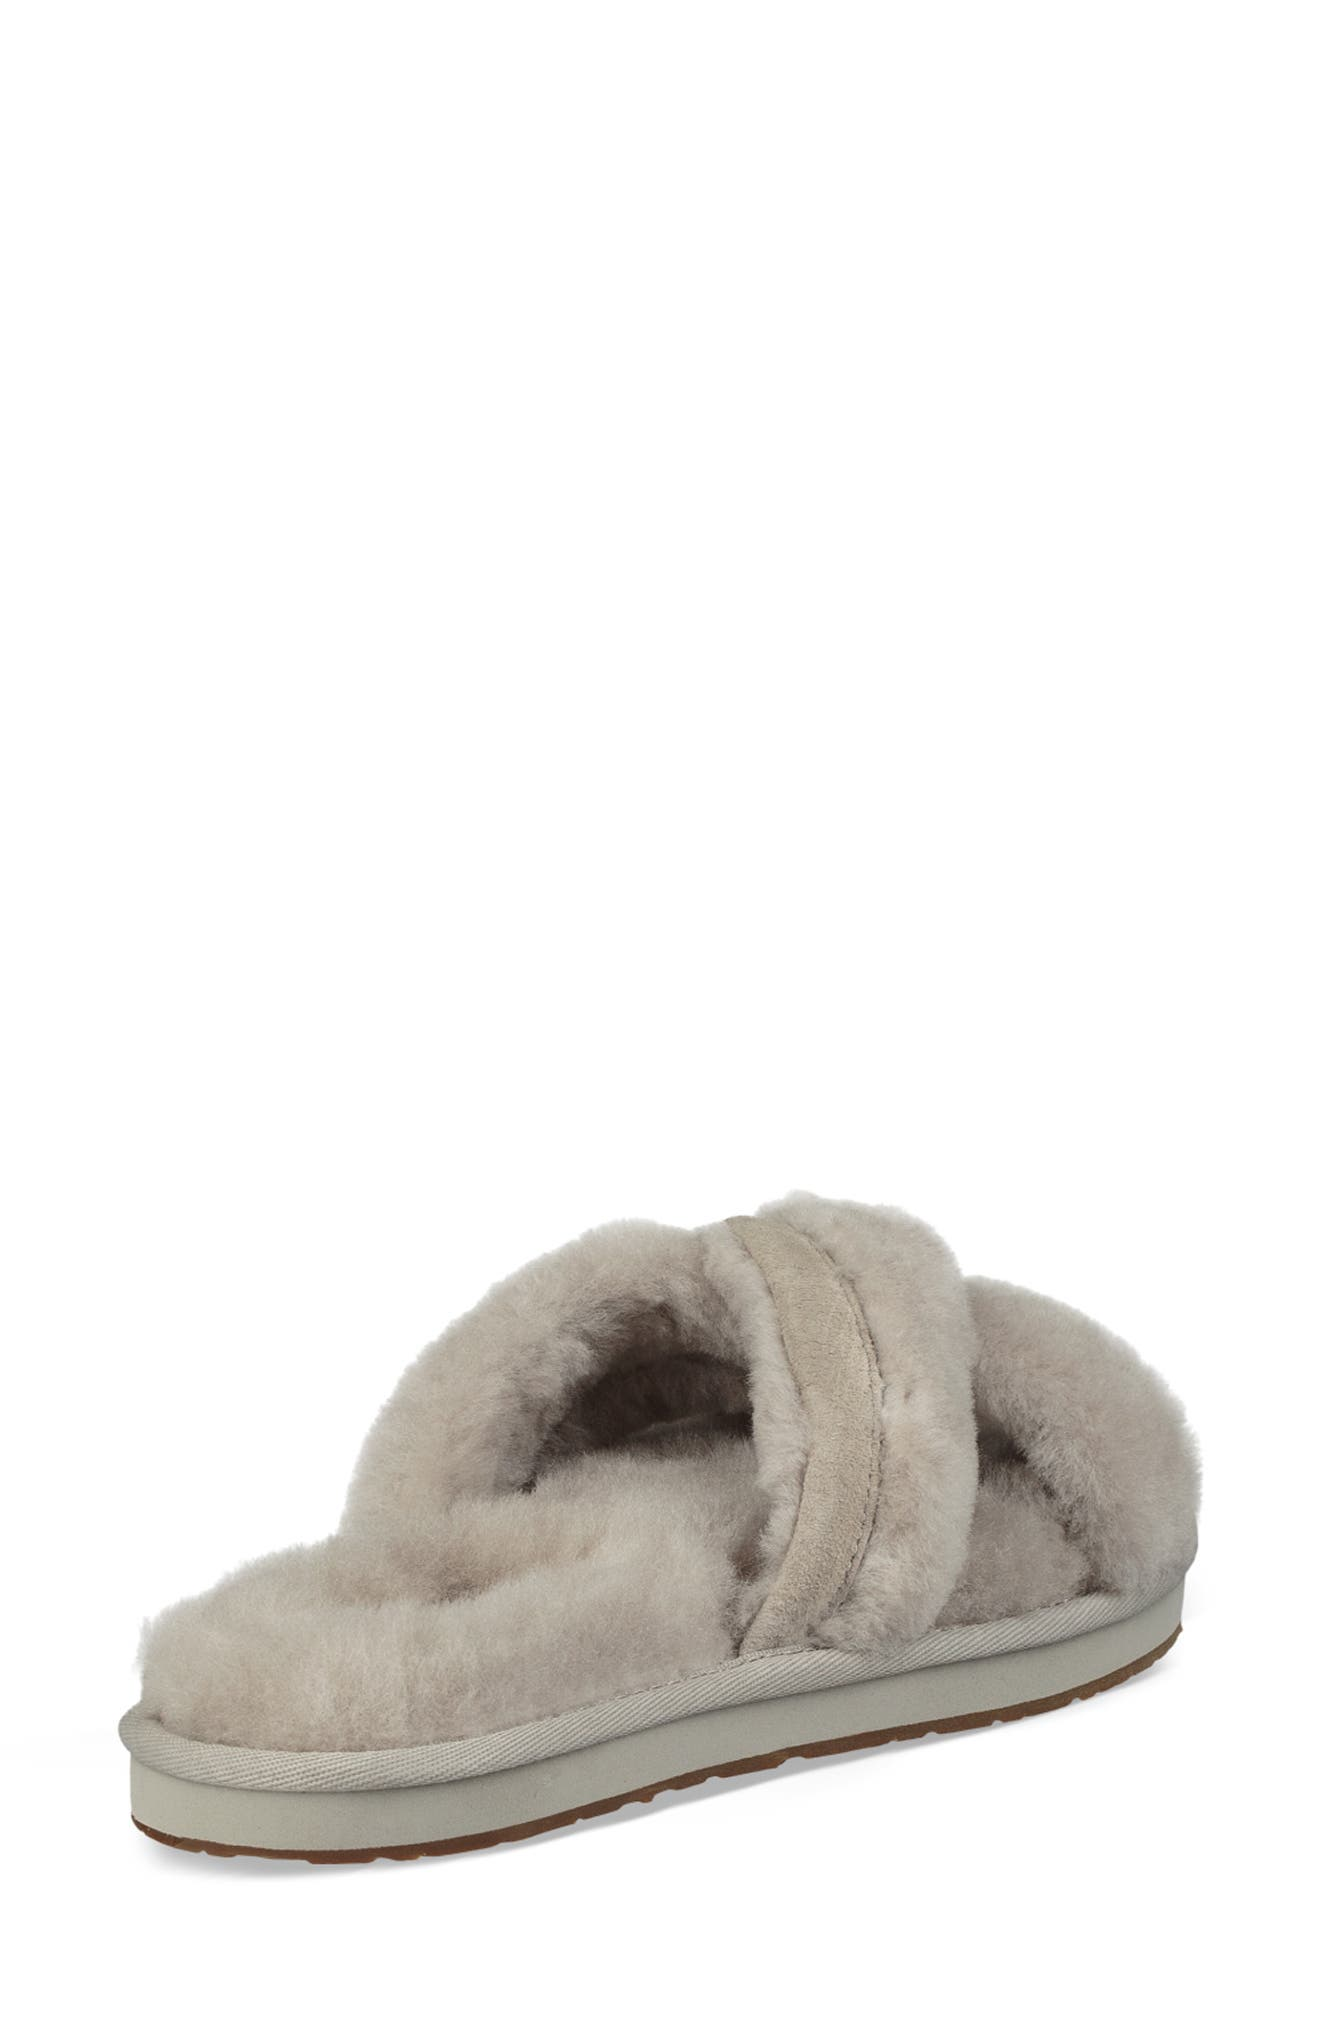 UGG<SUP>®</SUP>, Abela Genuine Shearling Flip Flop, Alternate thumbnail 2, color, 020